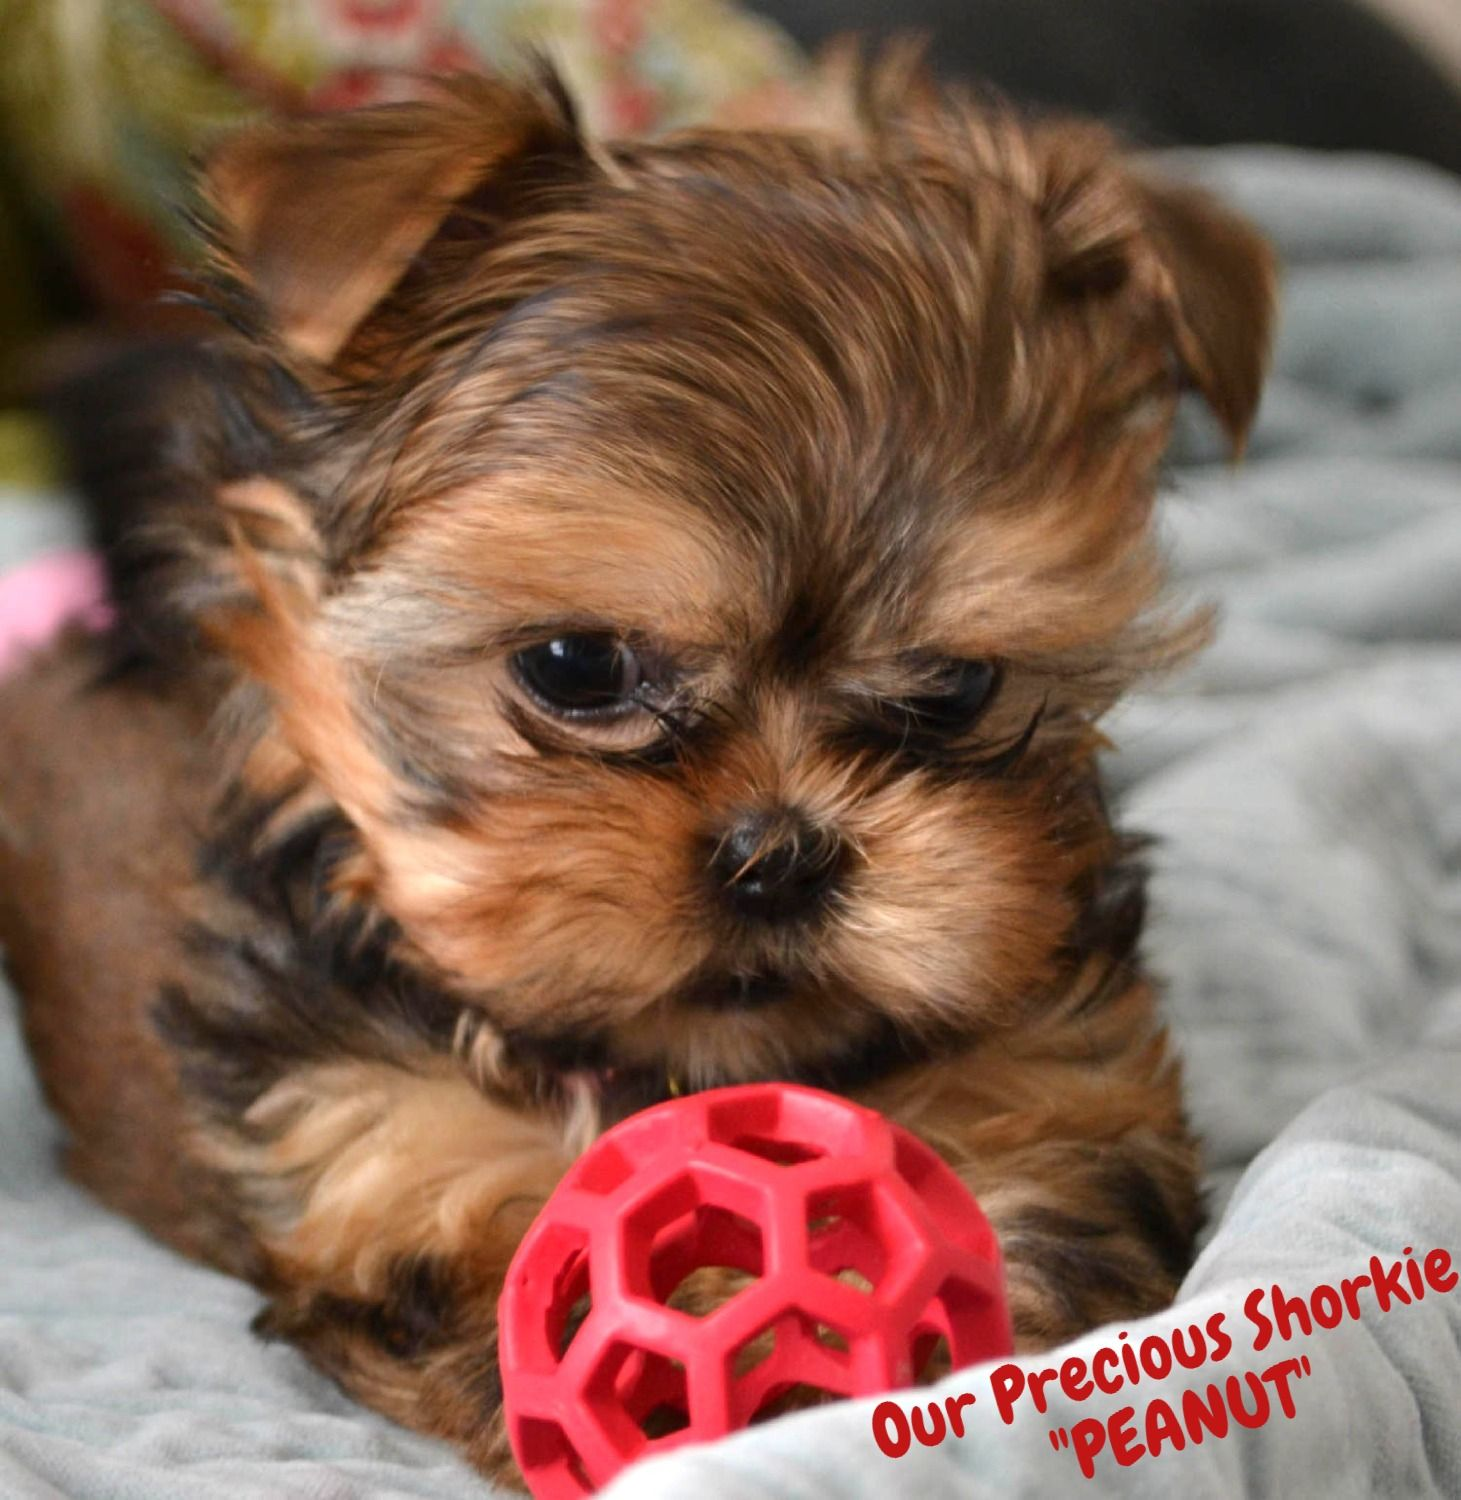 Teacup Yorkies For Sale In Tn Teacup Parti Yorkies For Sale In Tn Yorkie Breeder In Tennessee Parti Yorki Shorkie Puppies Yorkie Puppy Yorkie Puppy For Sale